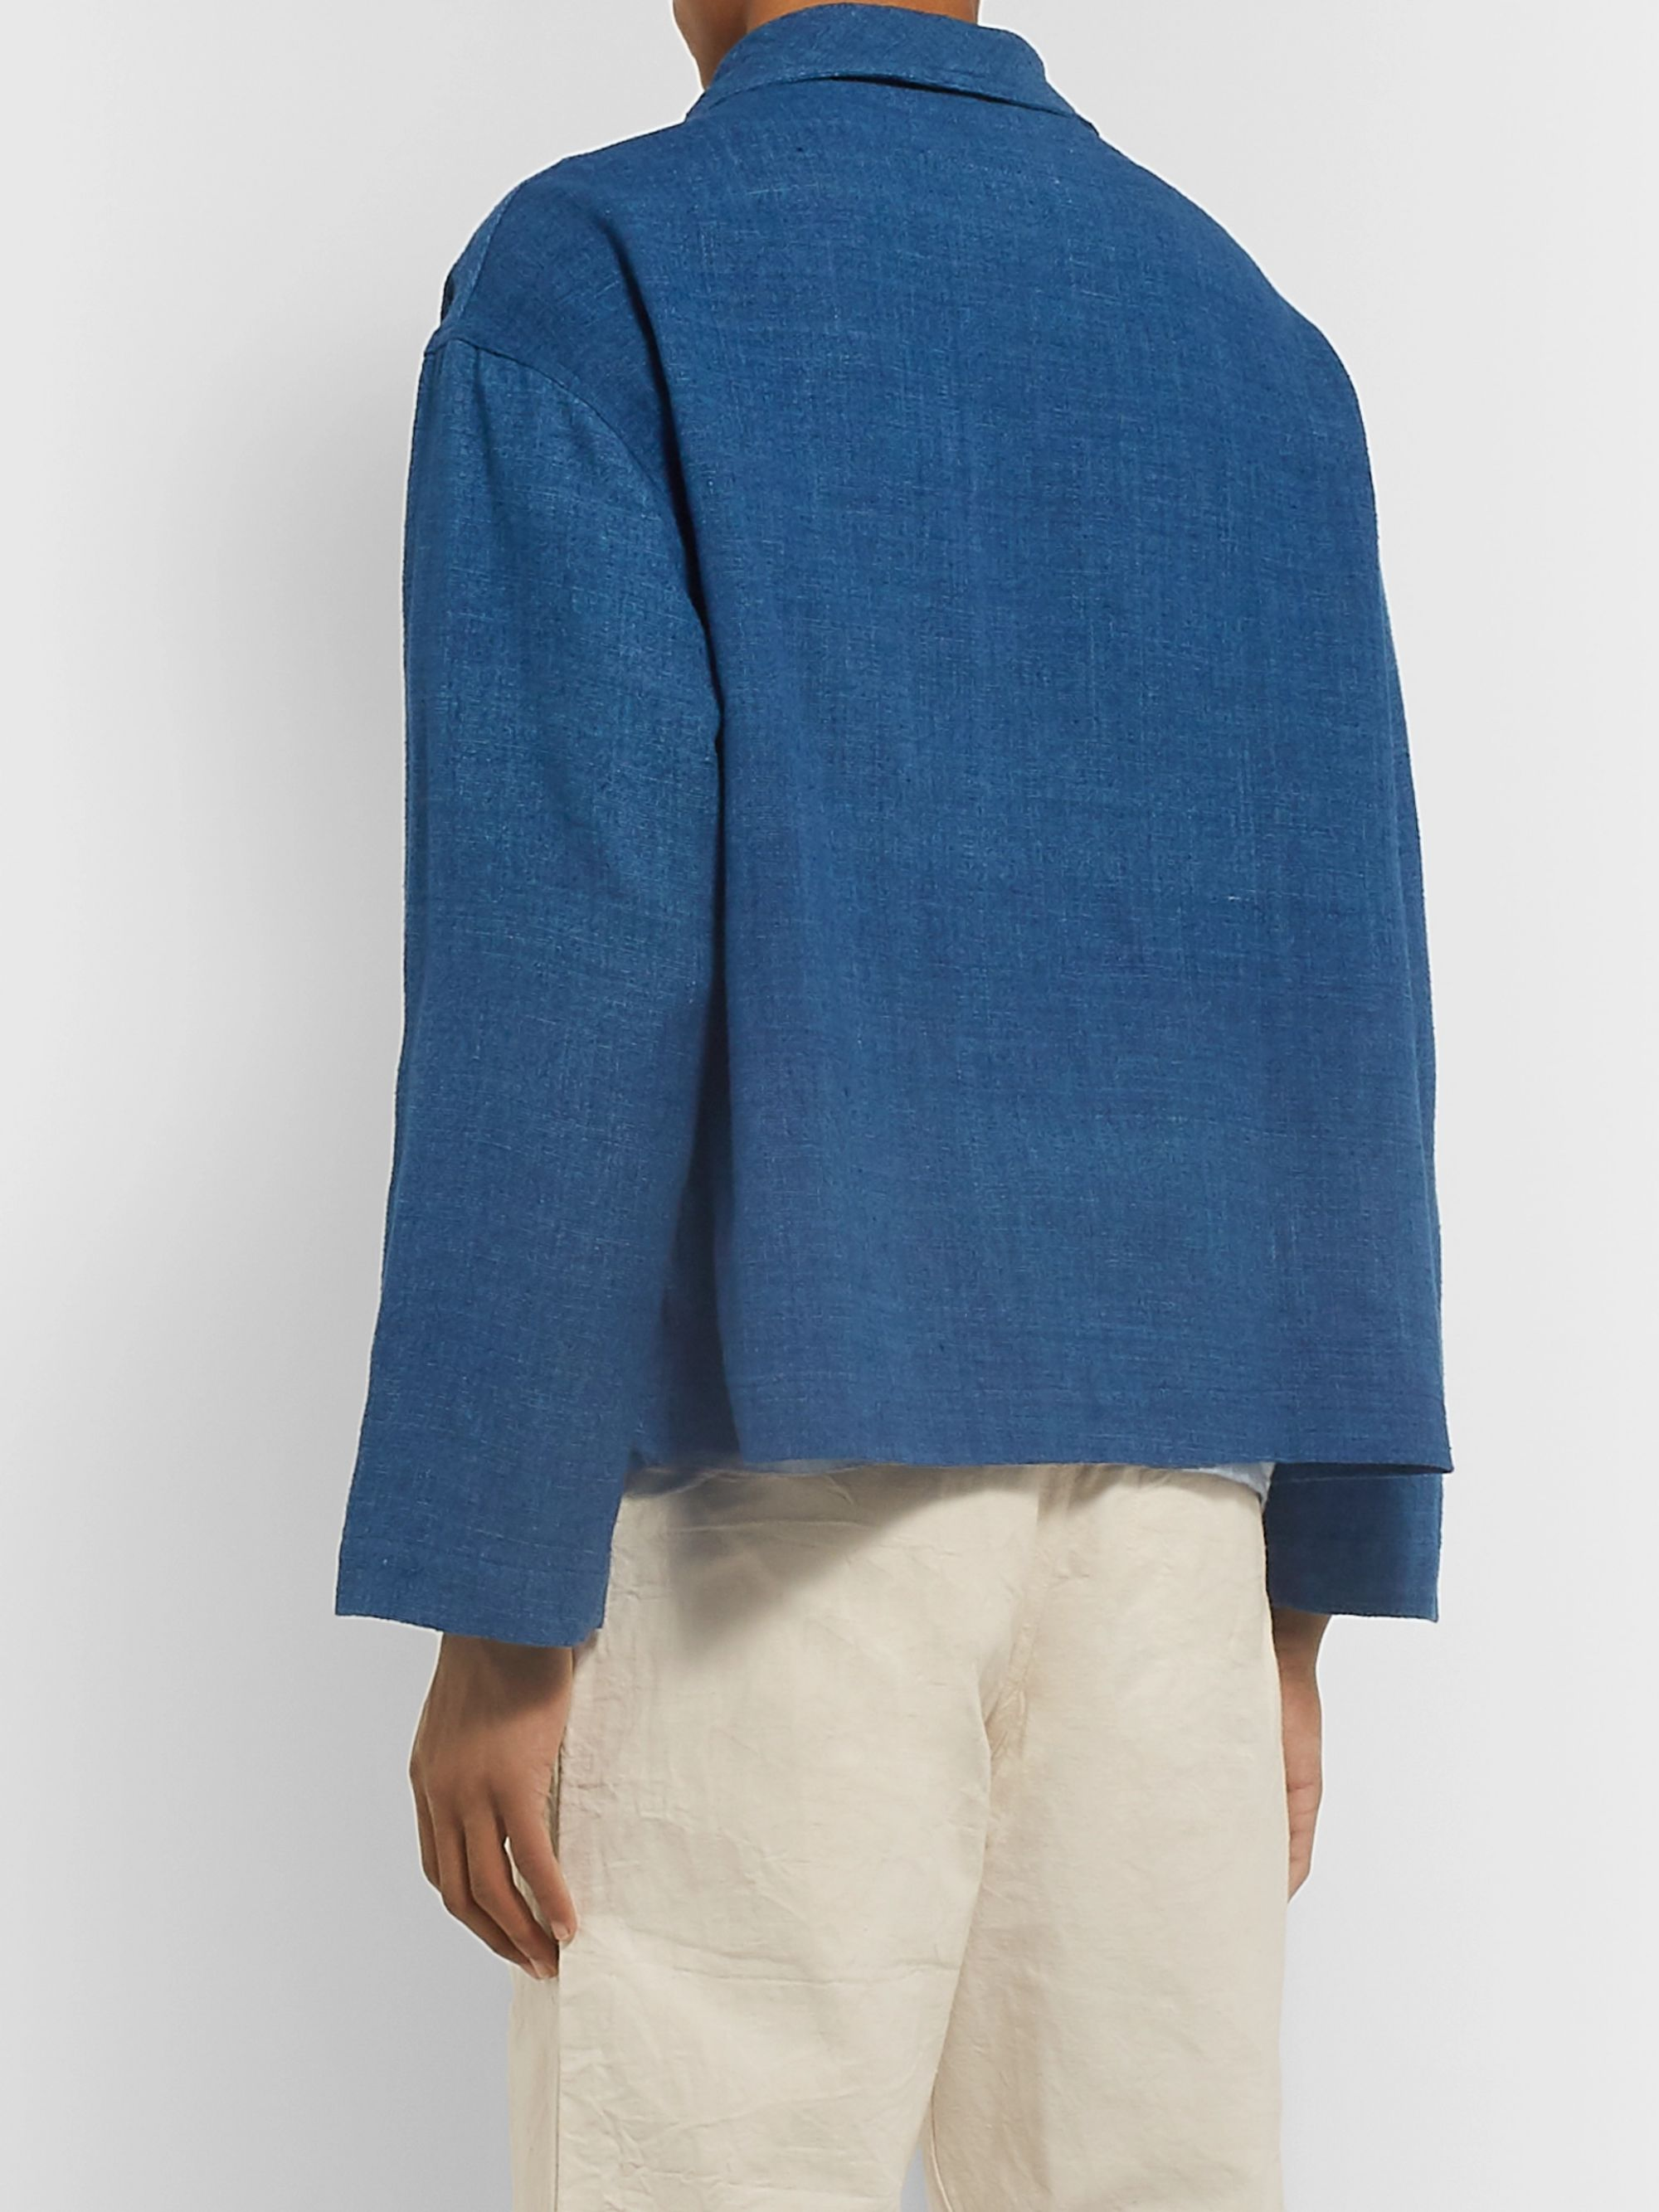 Story Mfg. Shawl-Collar Indigo-Dyed Organic Cotton Jacket